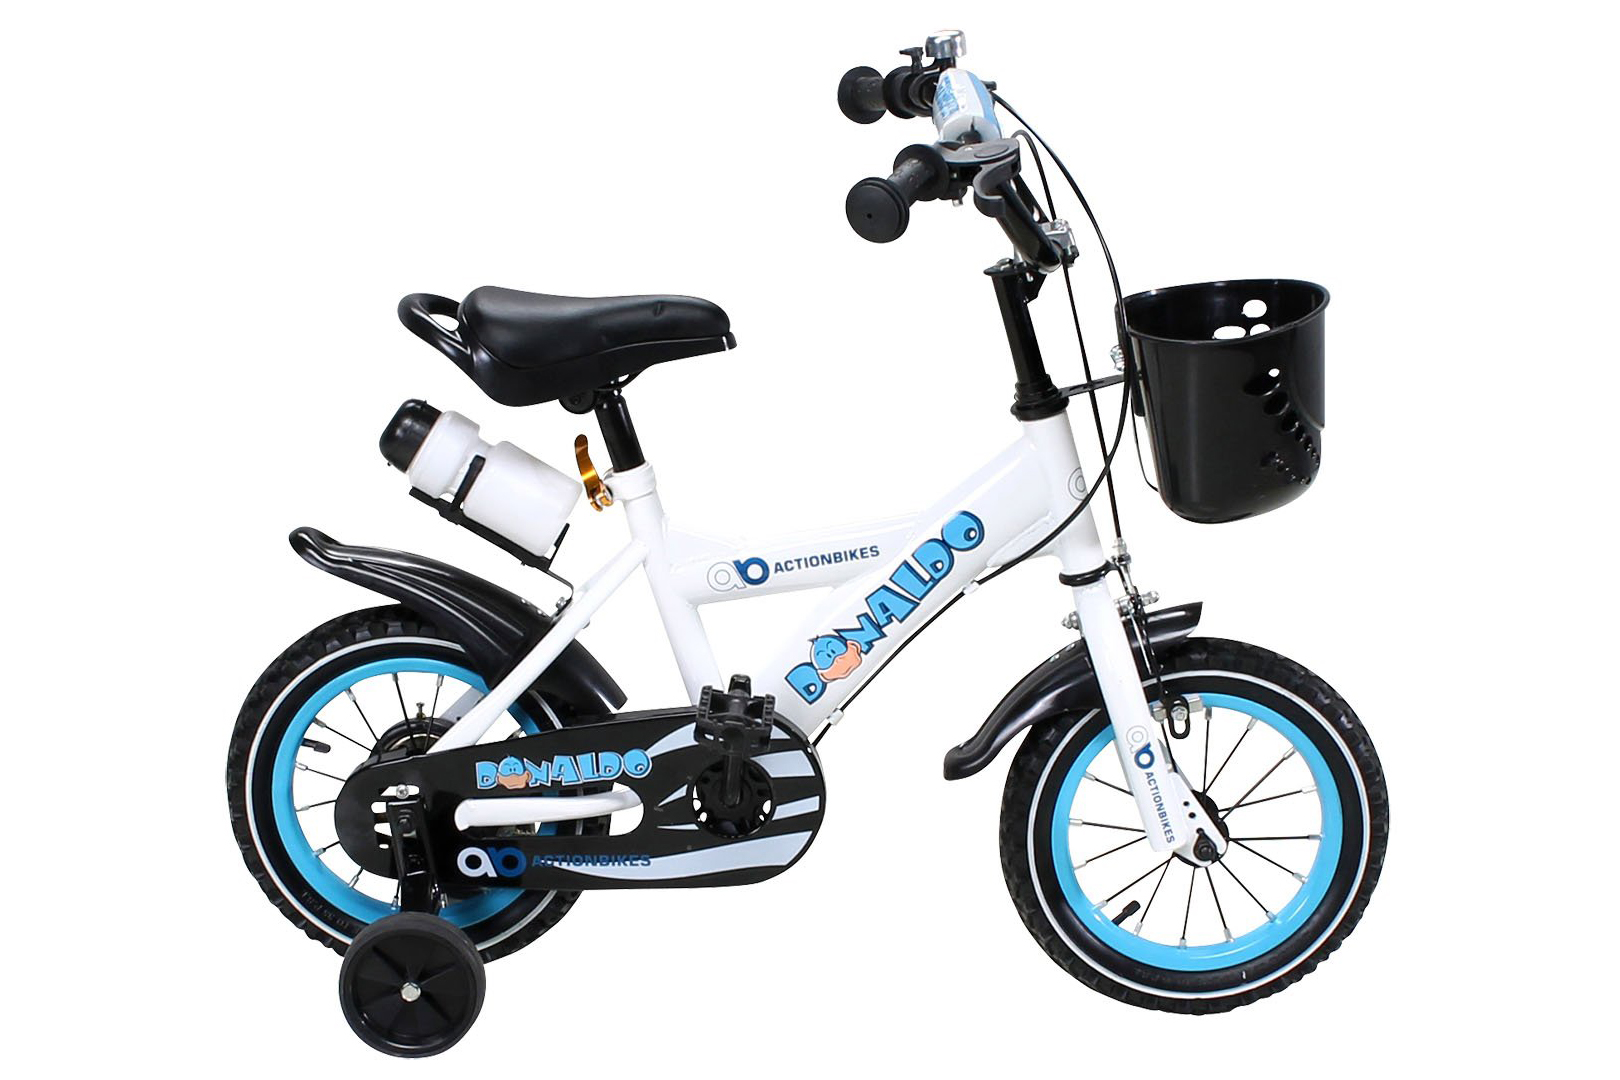 kinderfahrrad actionbikes fahrrad 12 zoll spielrad rad. Black Bedroom Furniture Sets. Home Design Ideas